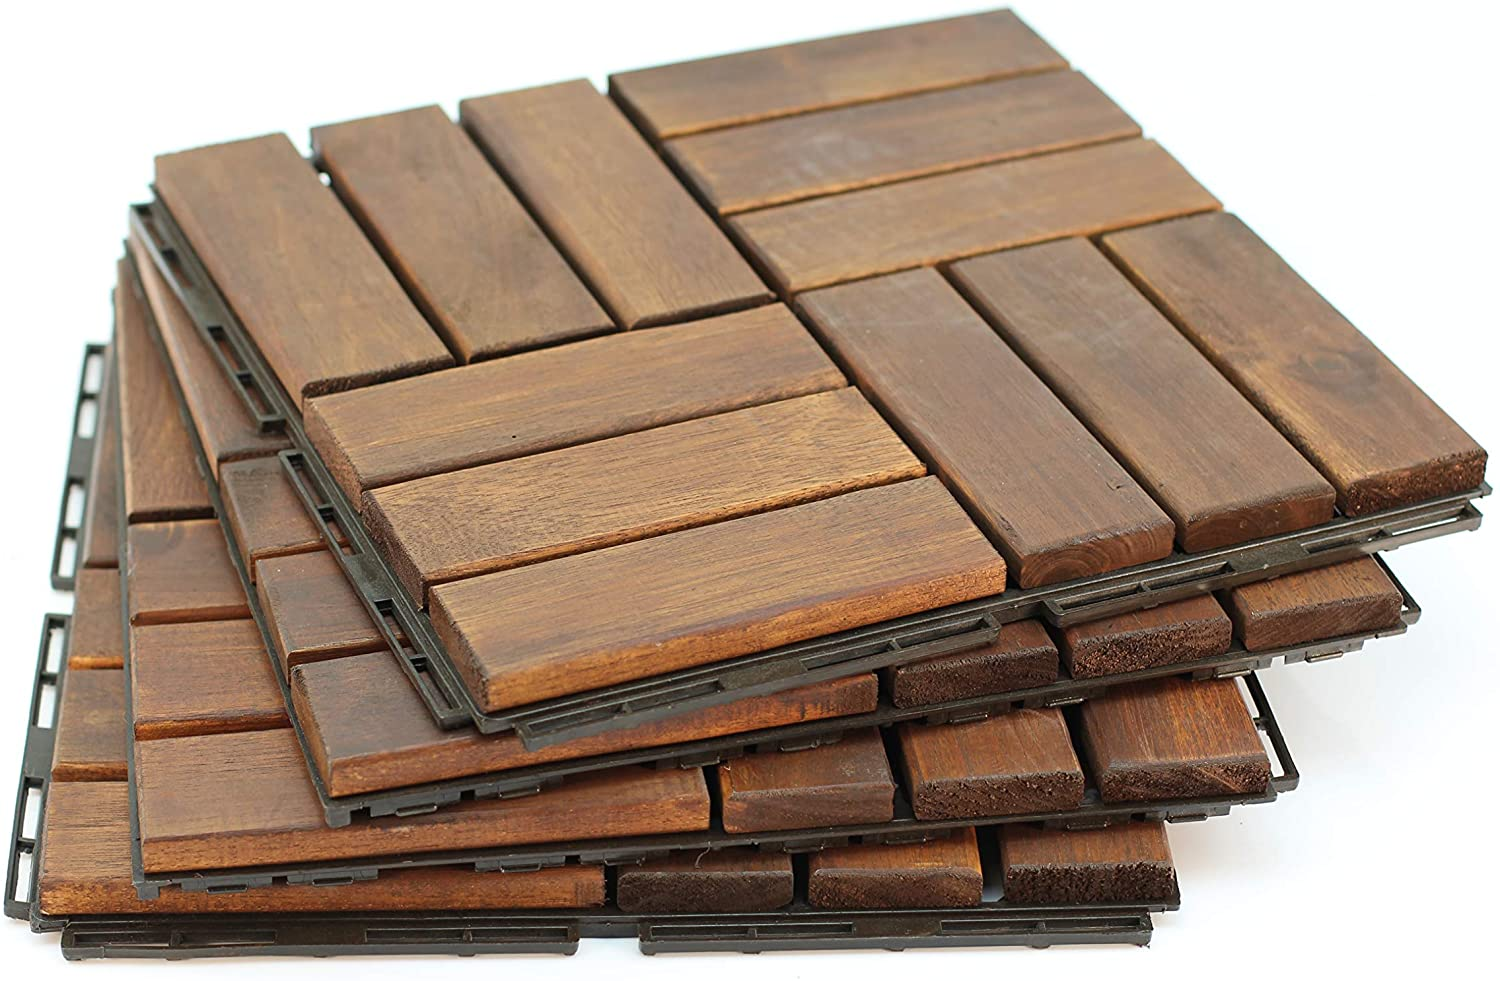 acacia teak wood flooring floor tile great backyard decor to update your look replace that vinyl flooring or a great way to cover that old decking